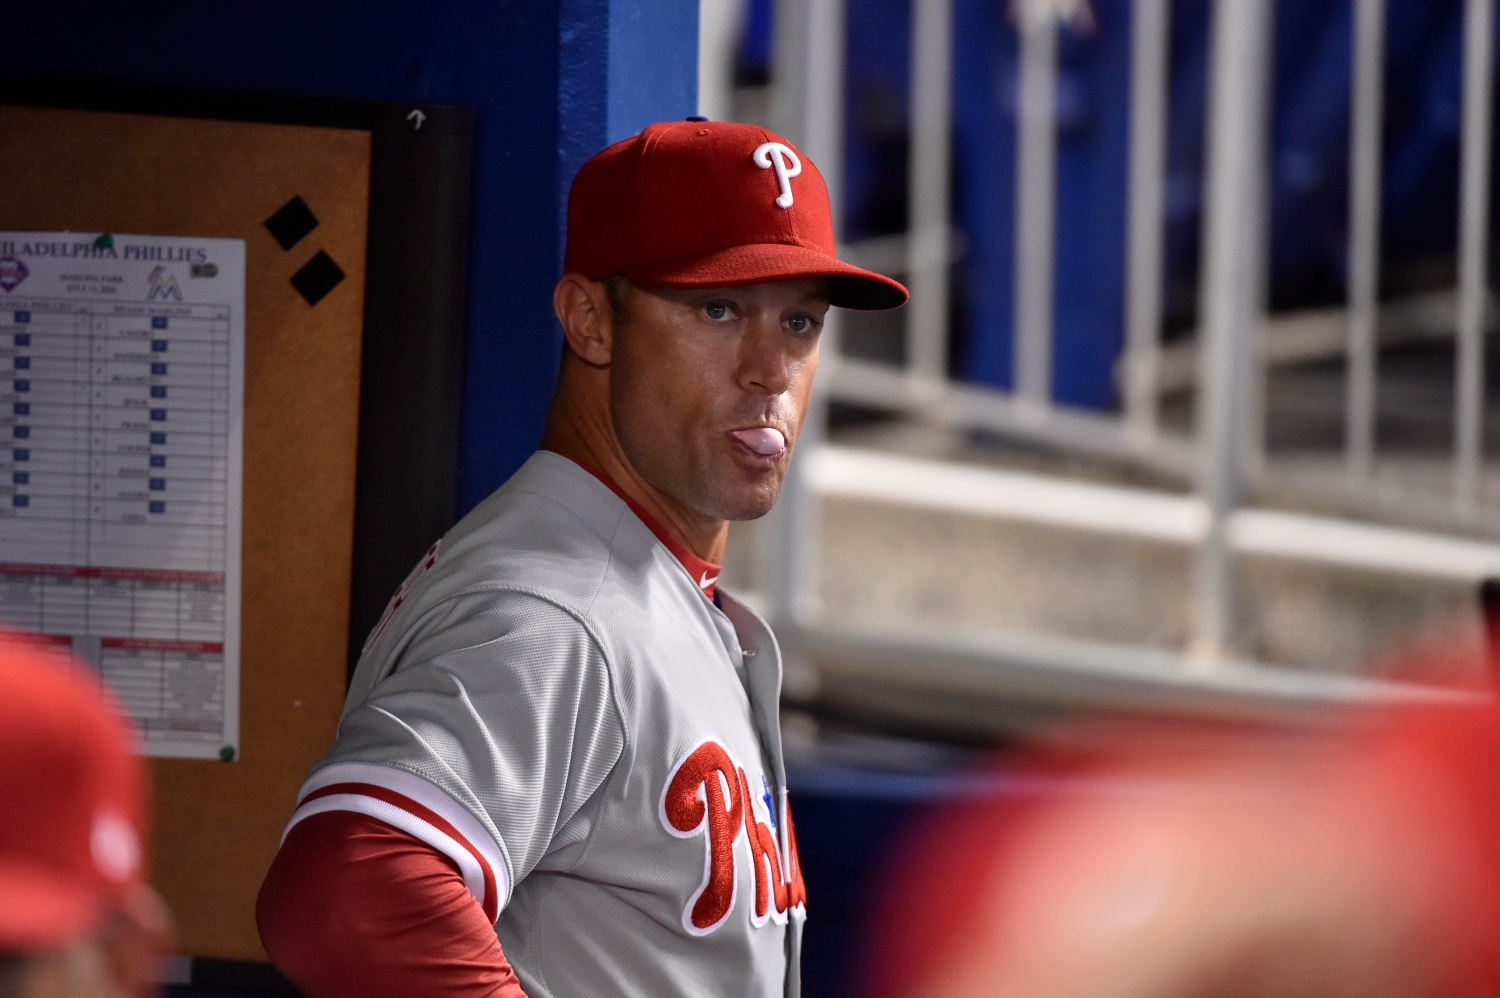 'I'm Depressed': Phillies Twitter Reacts To Front Office's Press Conference Explaining Gabe Kapler Firing